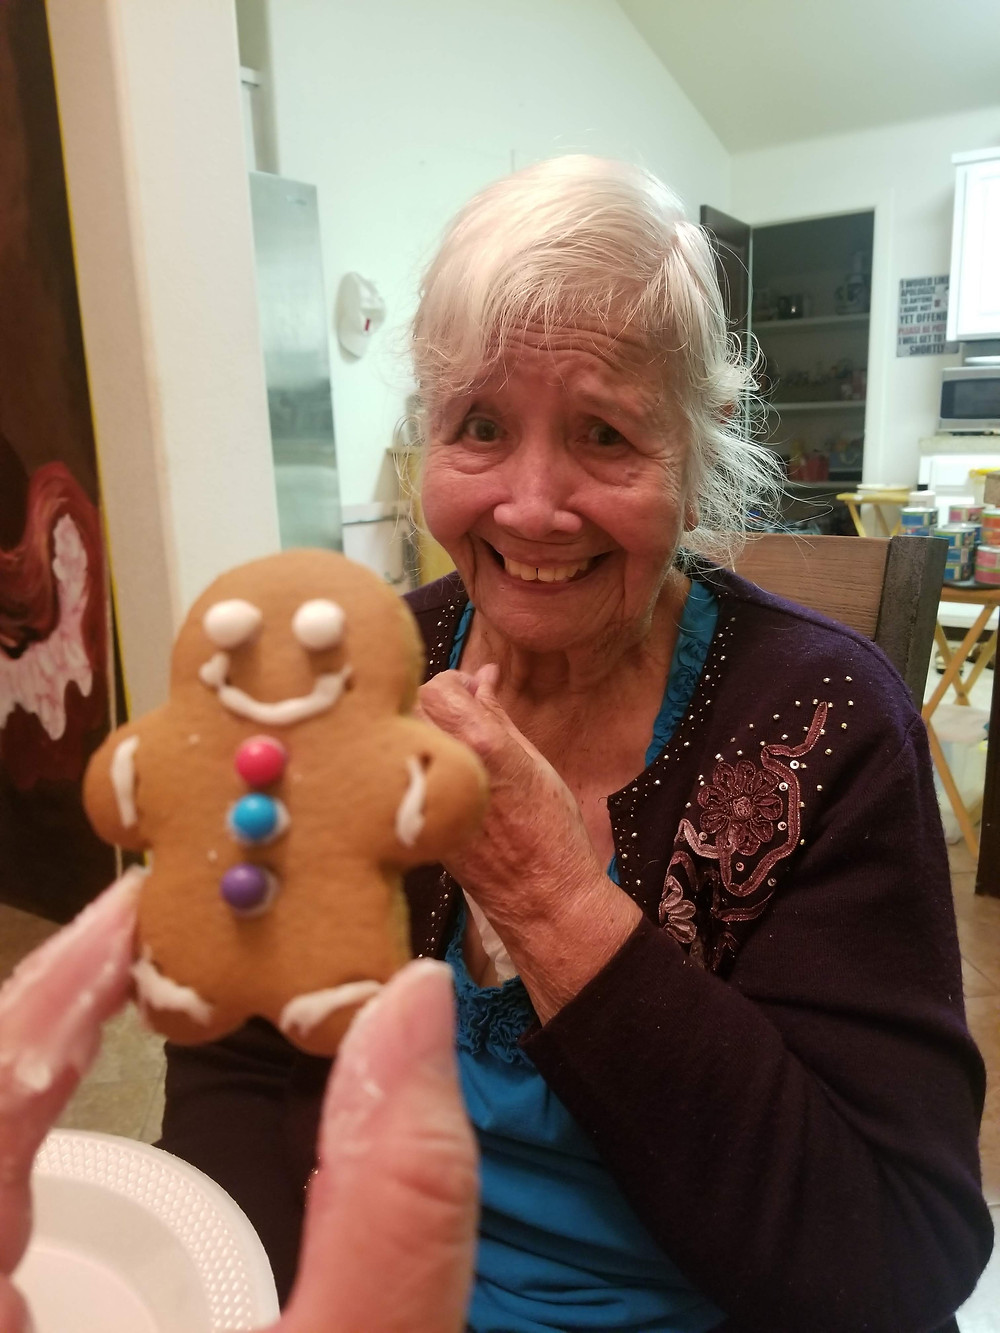 Mom and Gingerbread